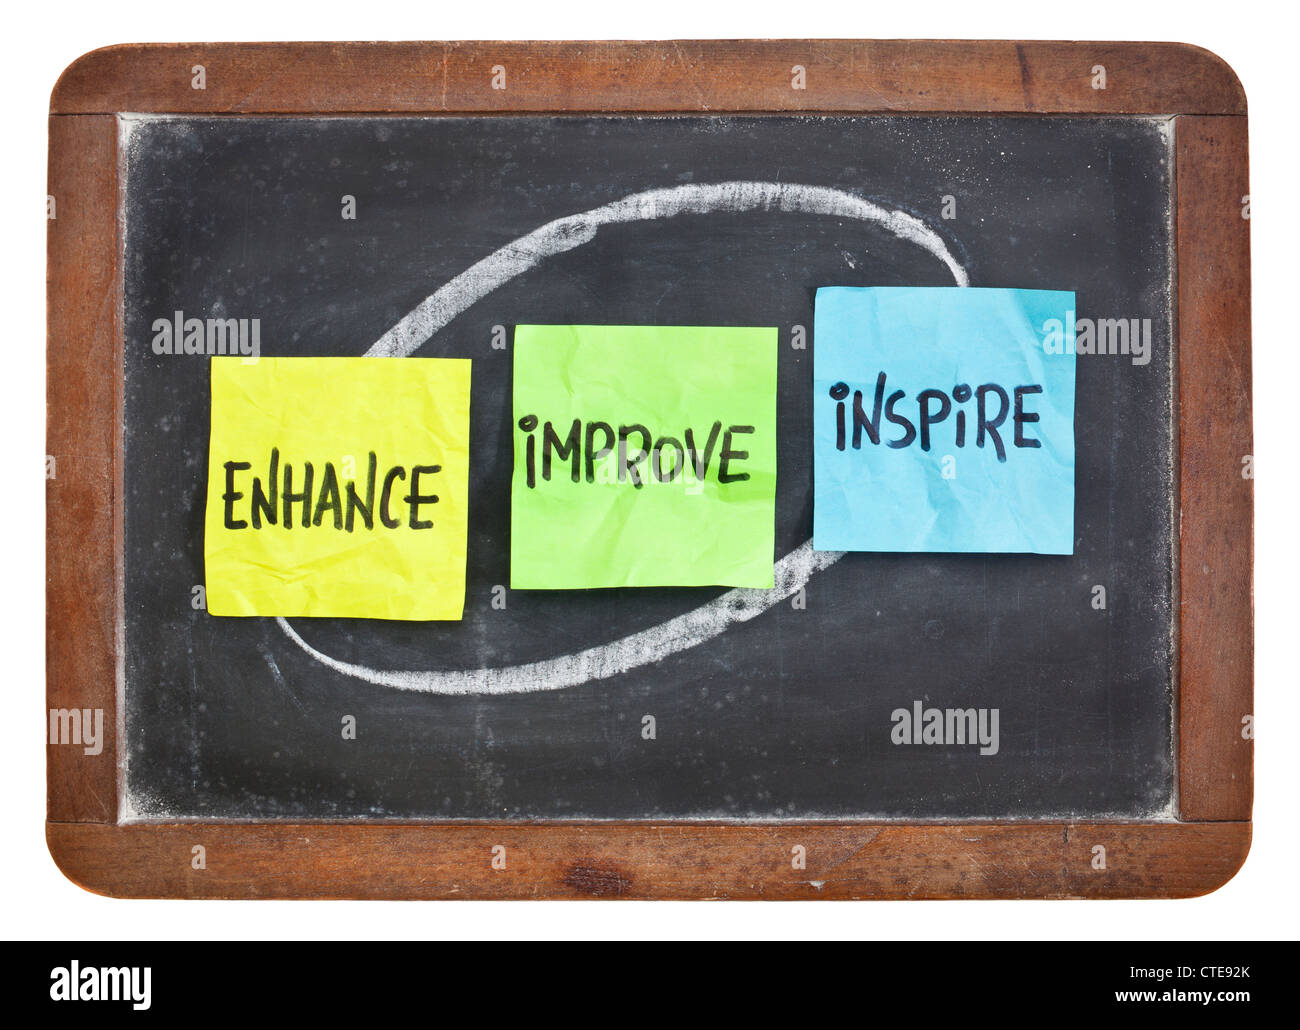 enhance, improve, inspire - motivation and inspiration concept - colorful sticky notes on a slate blackboard - Stock Image